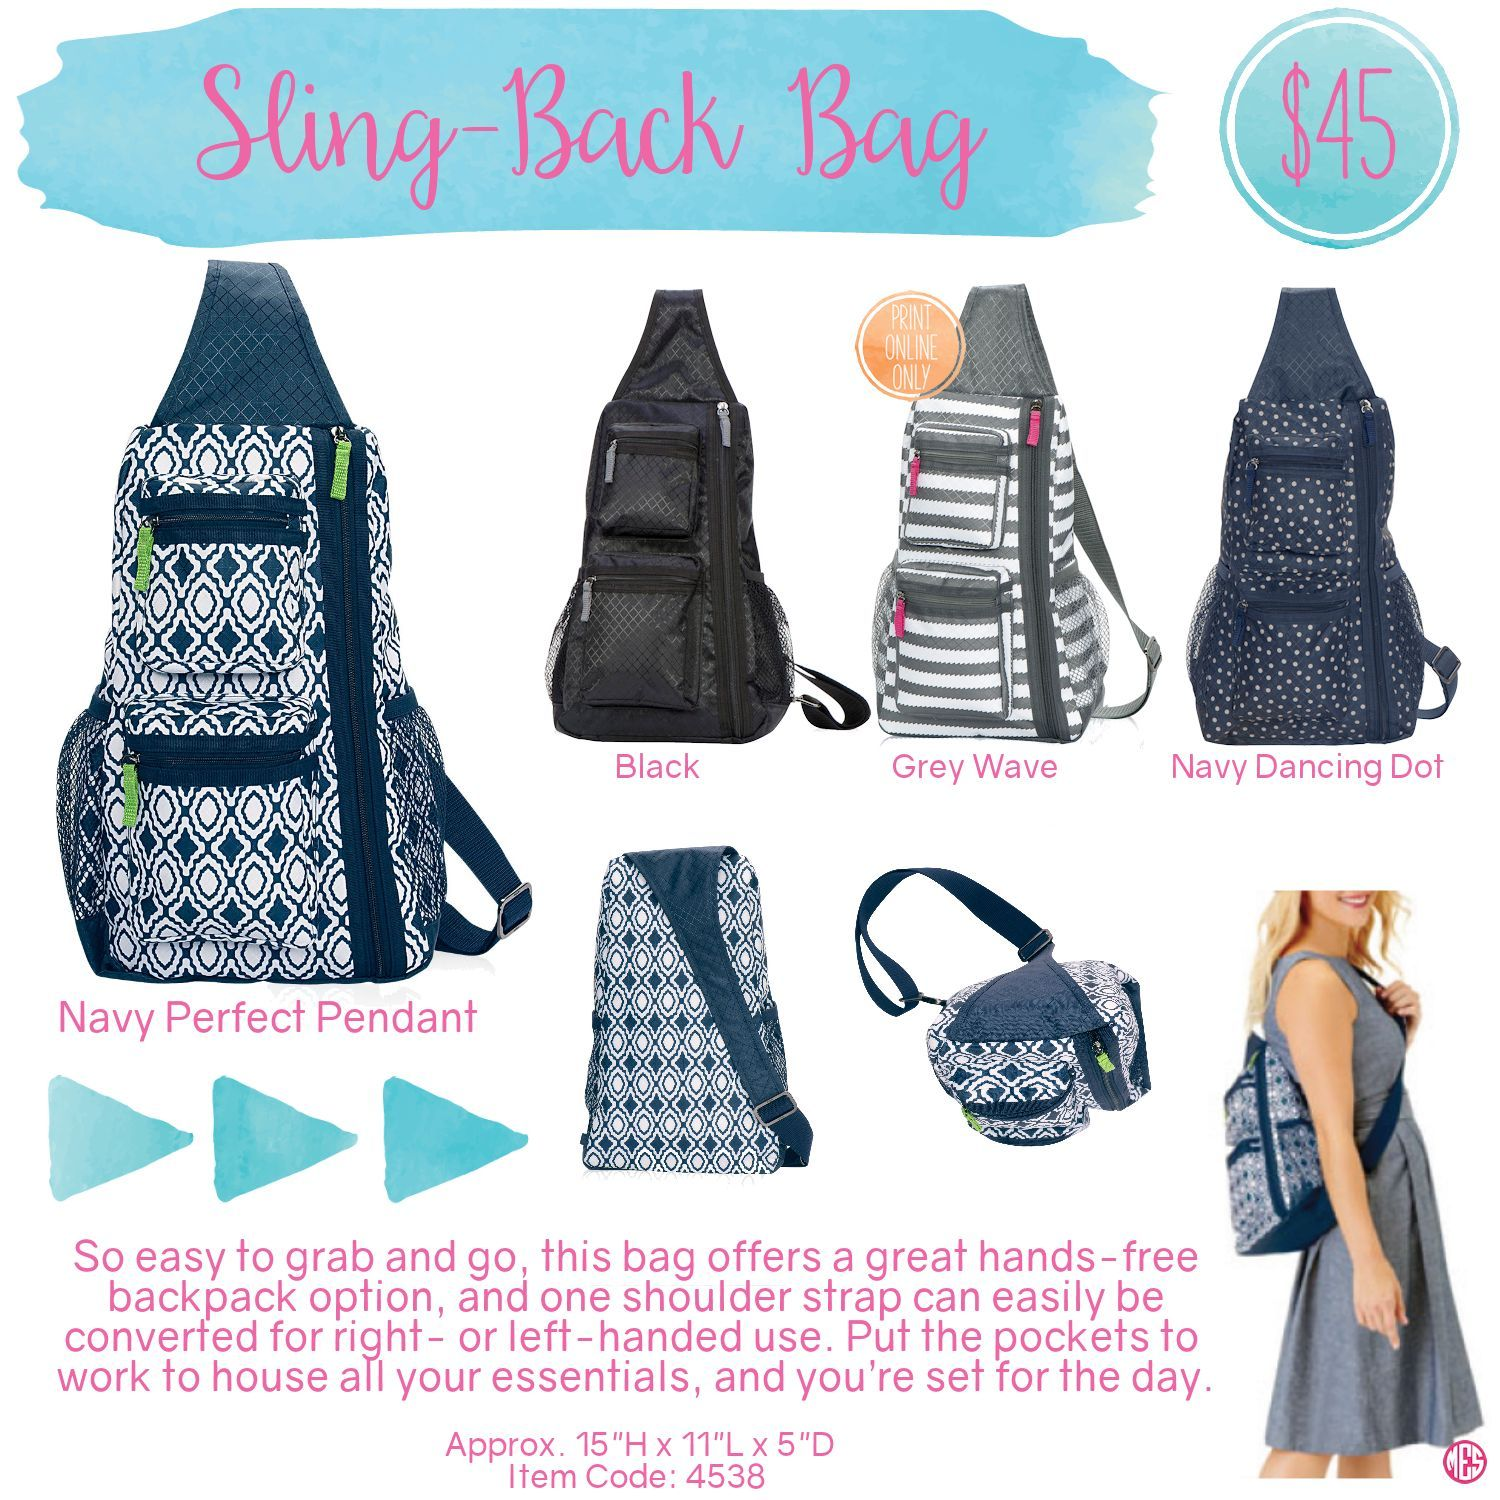 Sling-Back Bag in Navy Perfect Pendant for $48 - So easy to grab ...